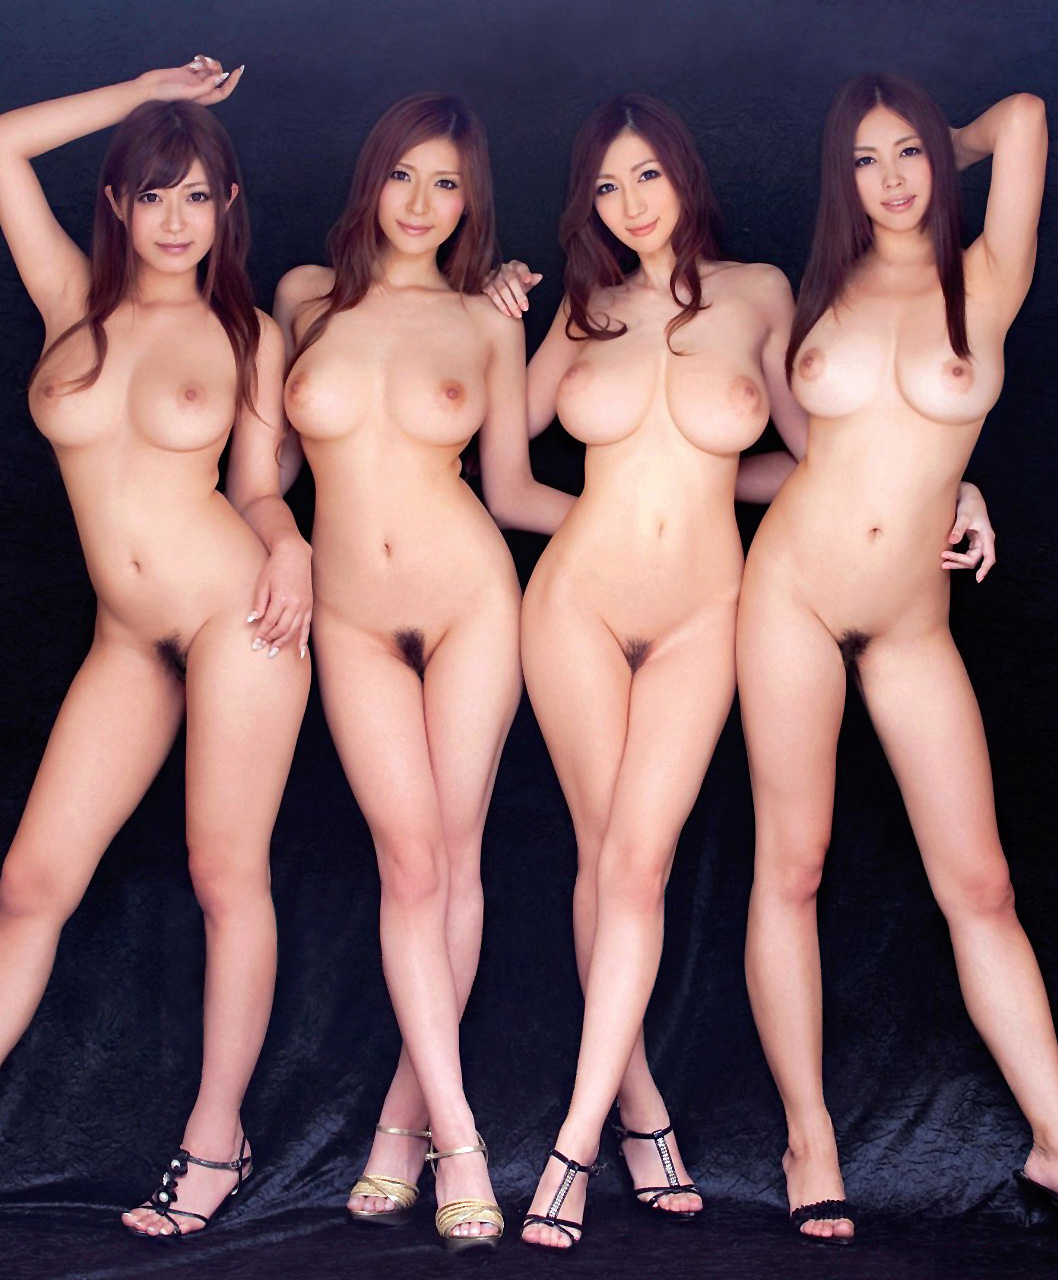 real virgin pussy indonesia hd